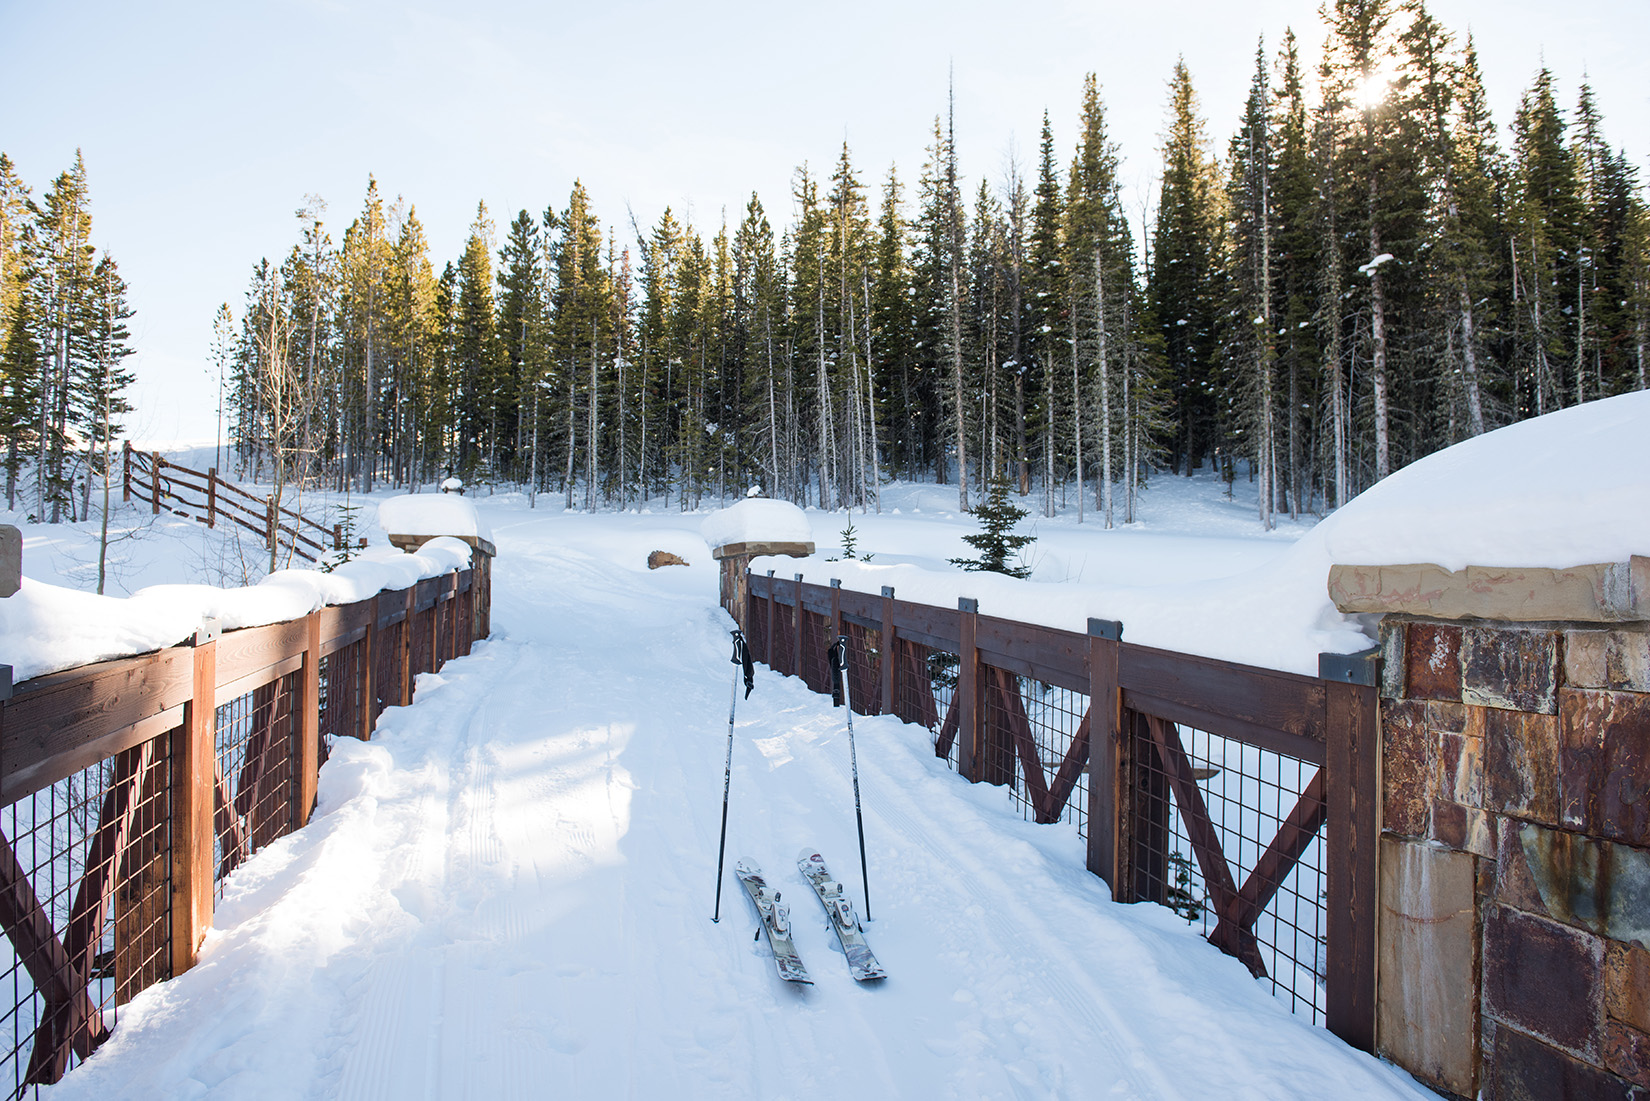 This home has a private ski-way for quick access to the slopes.